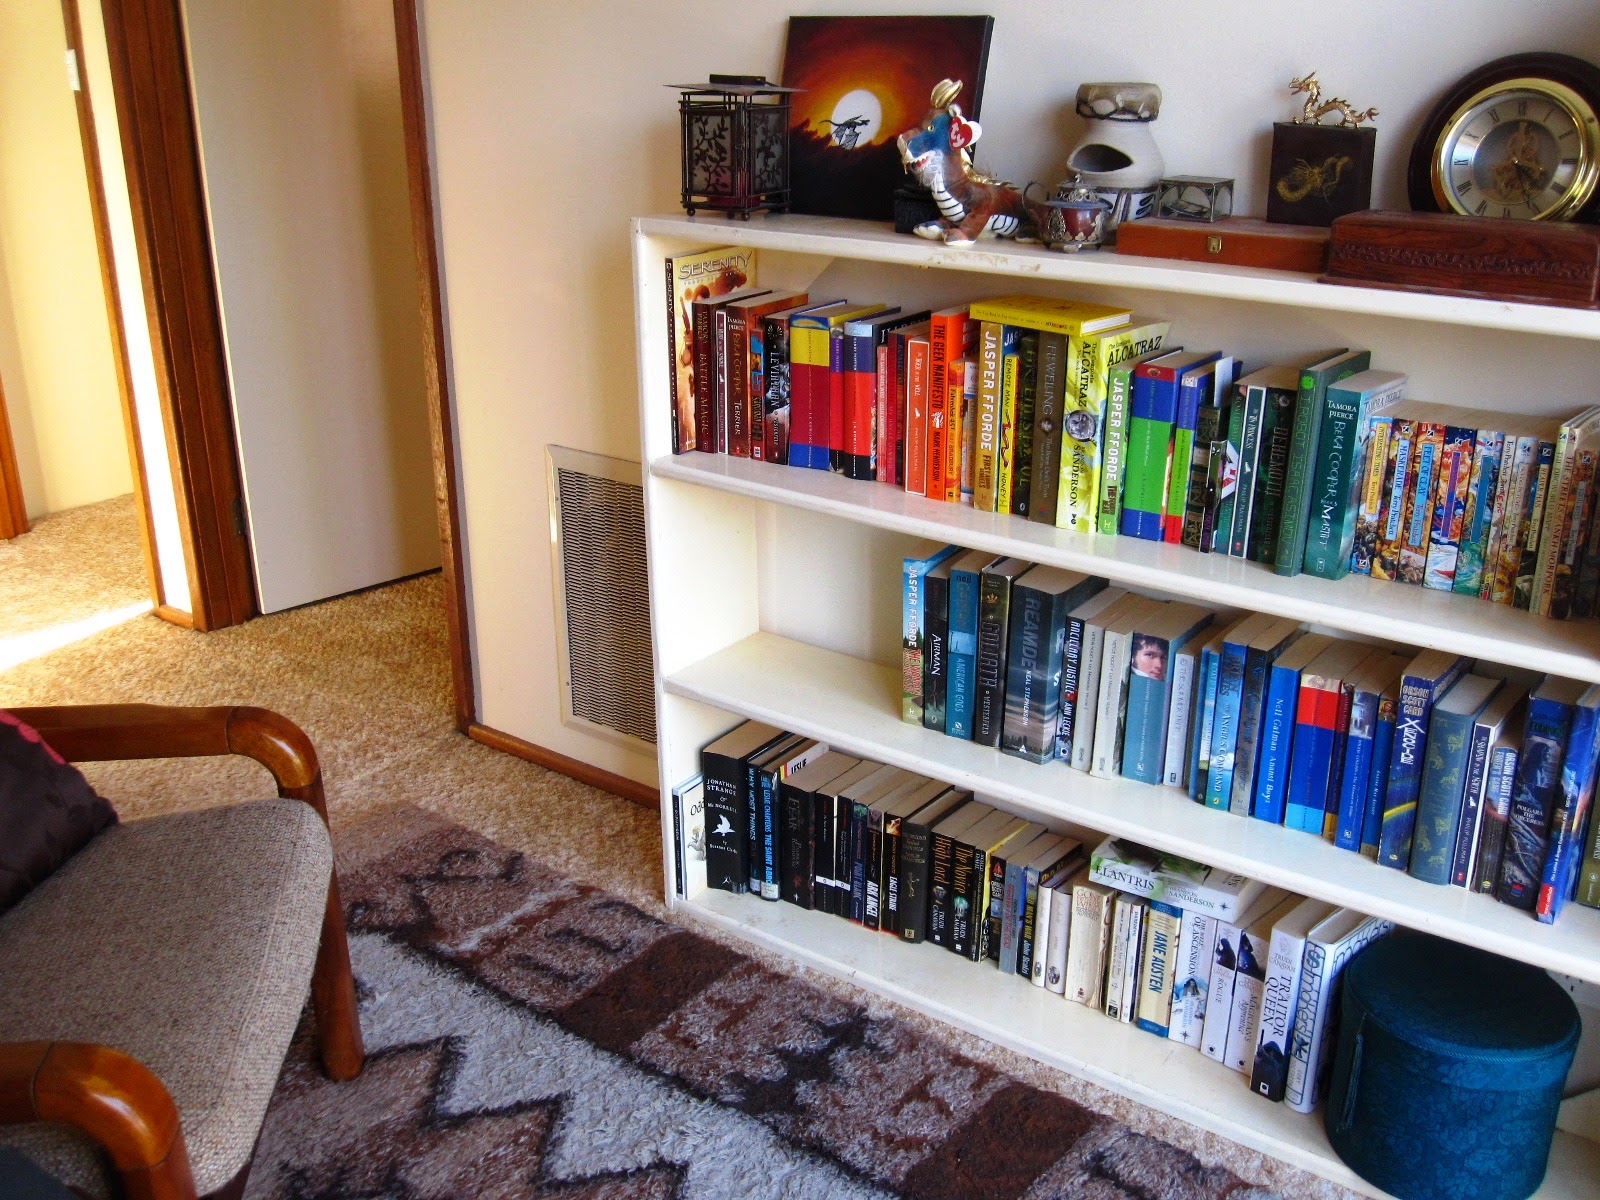 A reading nook which includes a 1970s comfy chair and floor rug, and a long cream bookcase containing books in colour order and with an arrangement of brown-themed items on top.